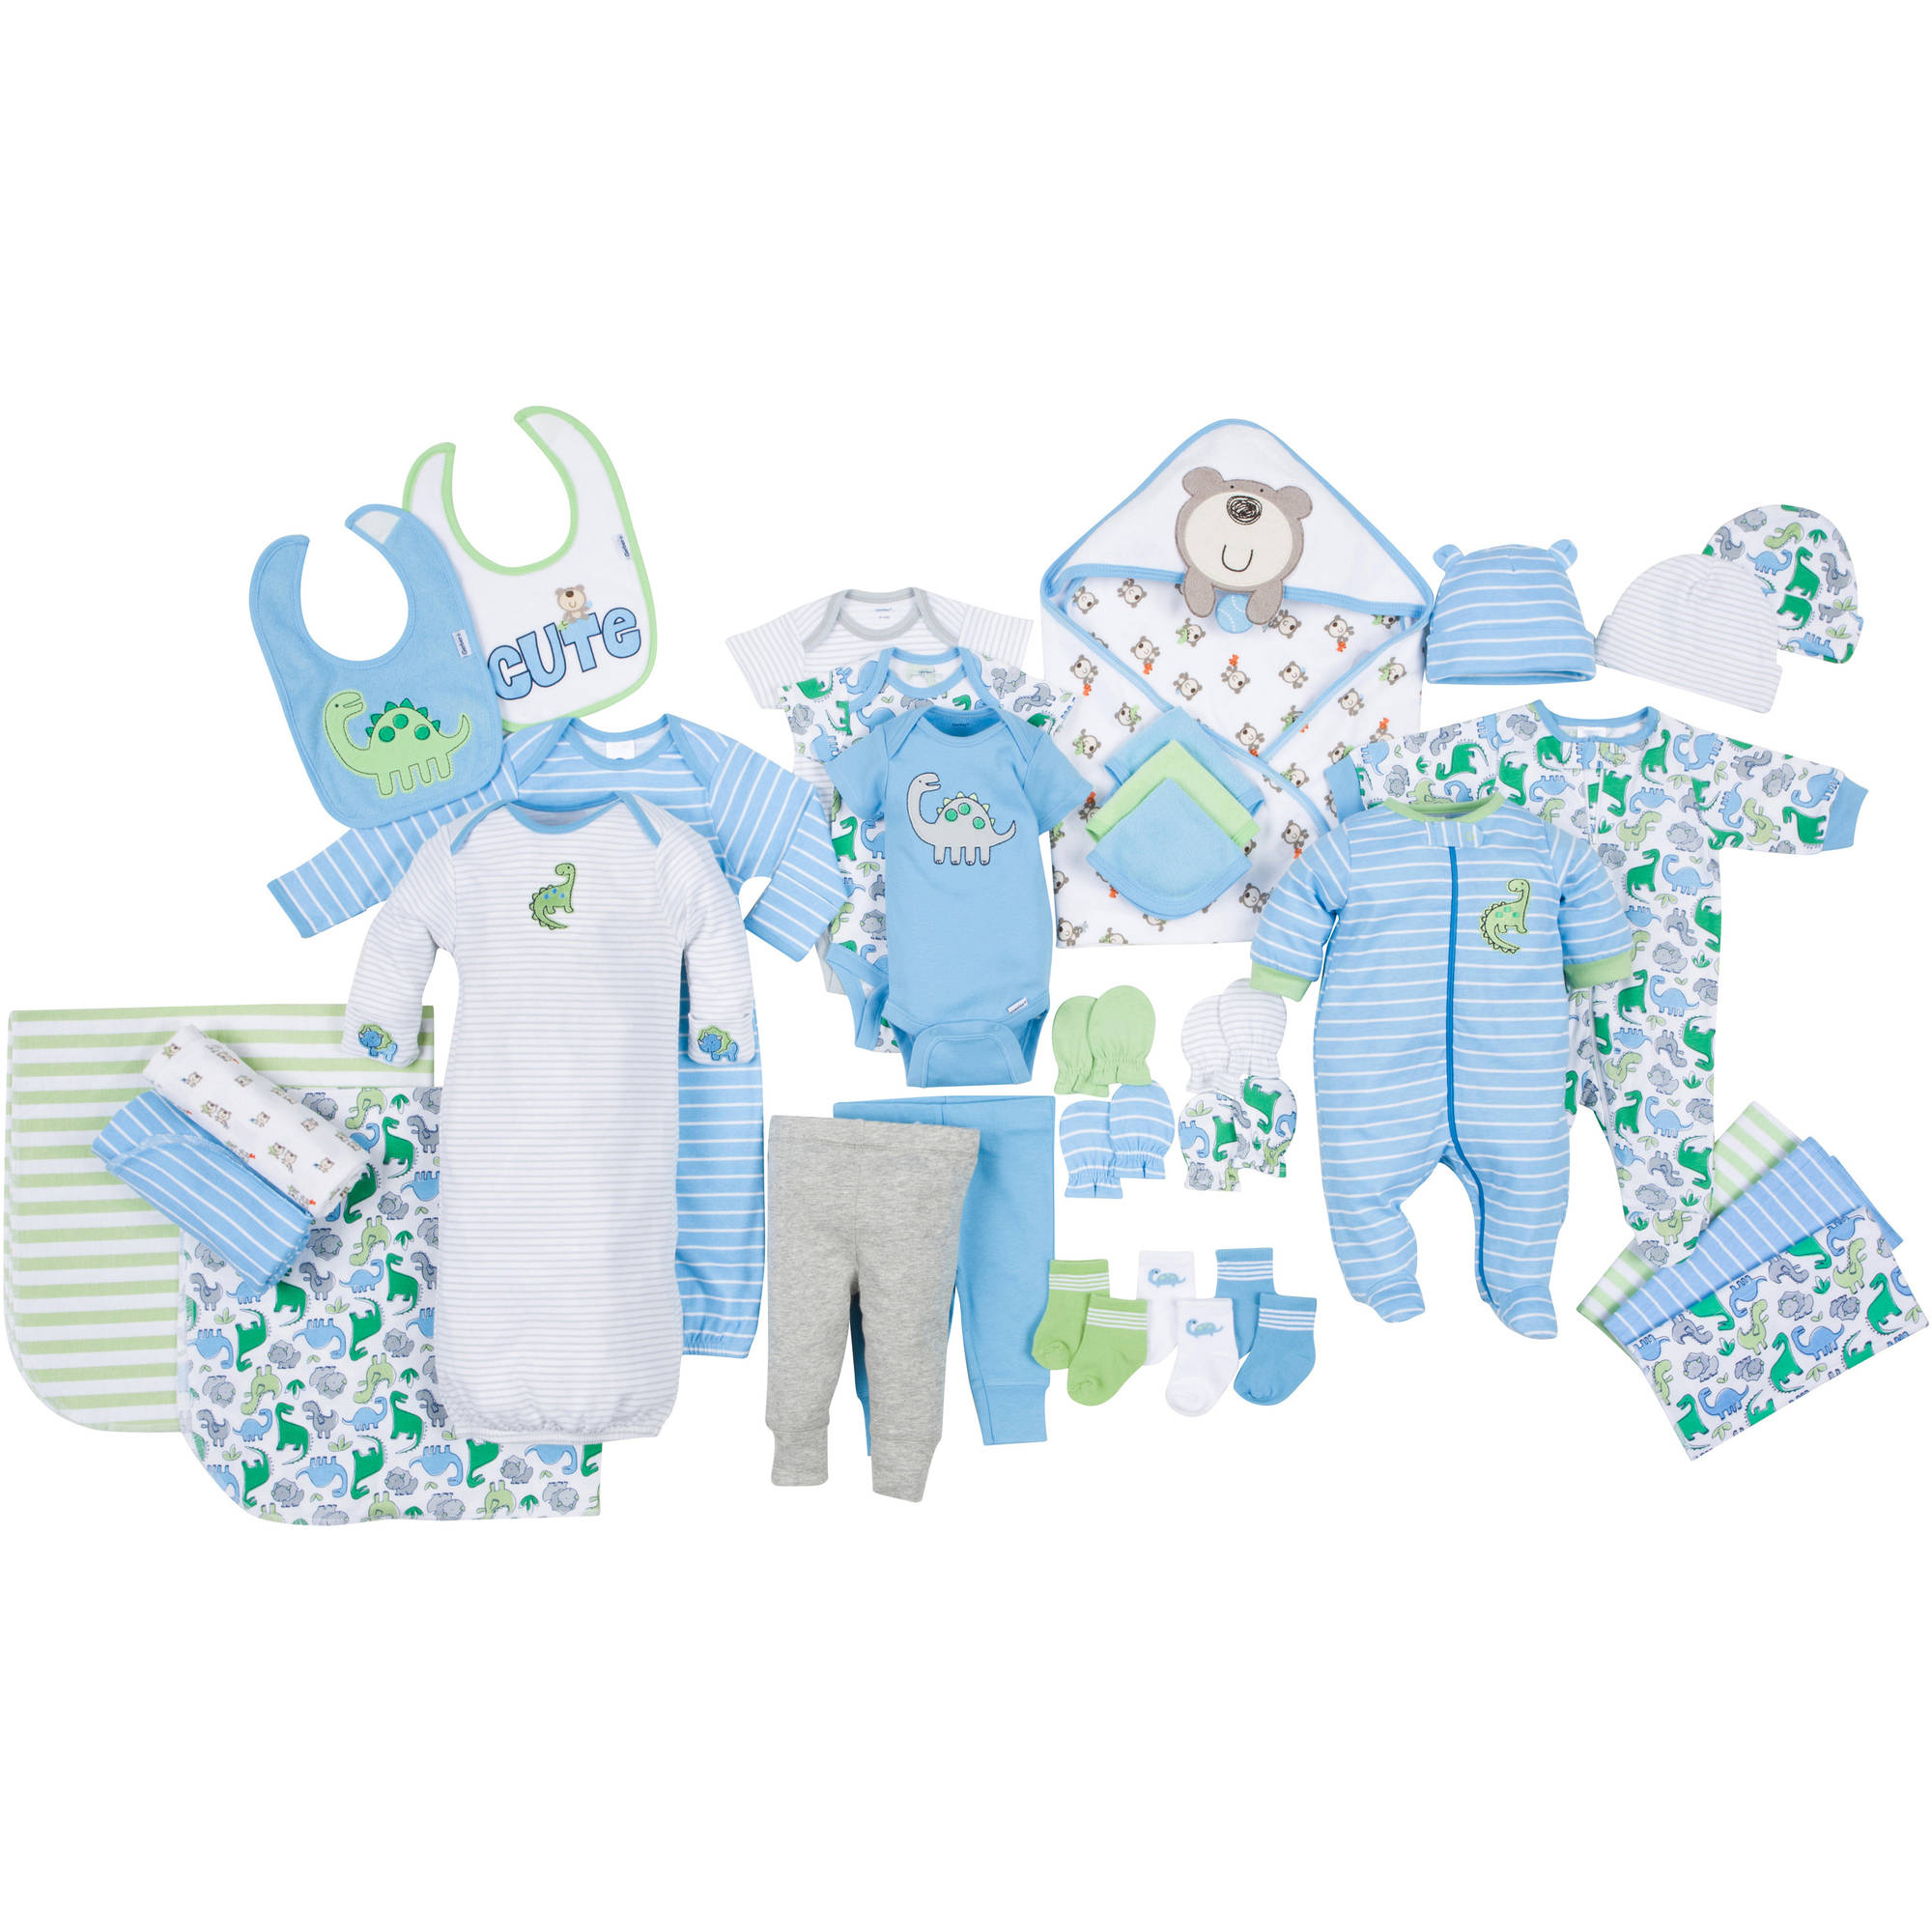 Gerber Newborn Baby Boy Perfect Baby Shower Gift Layette Set, 33-Piece